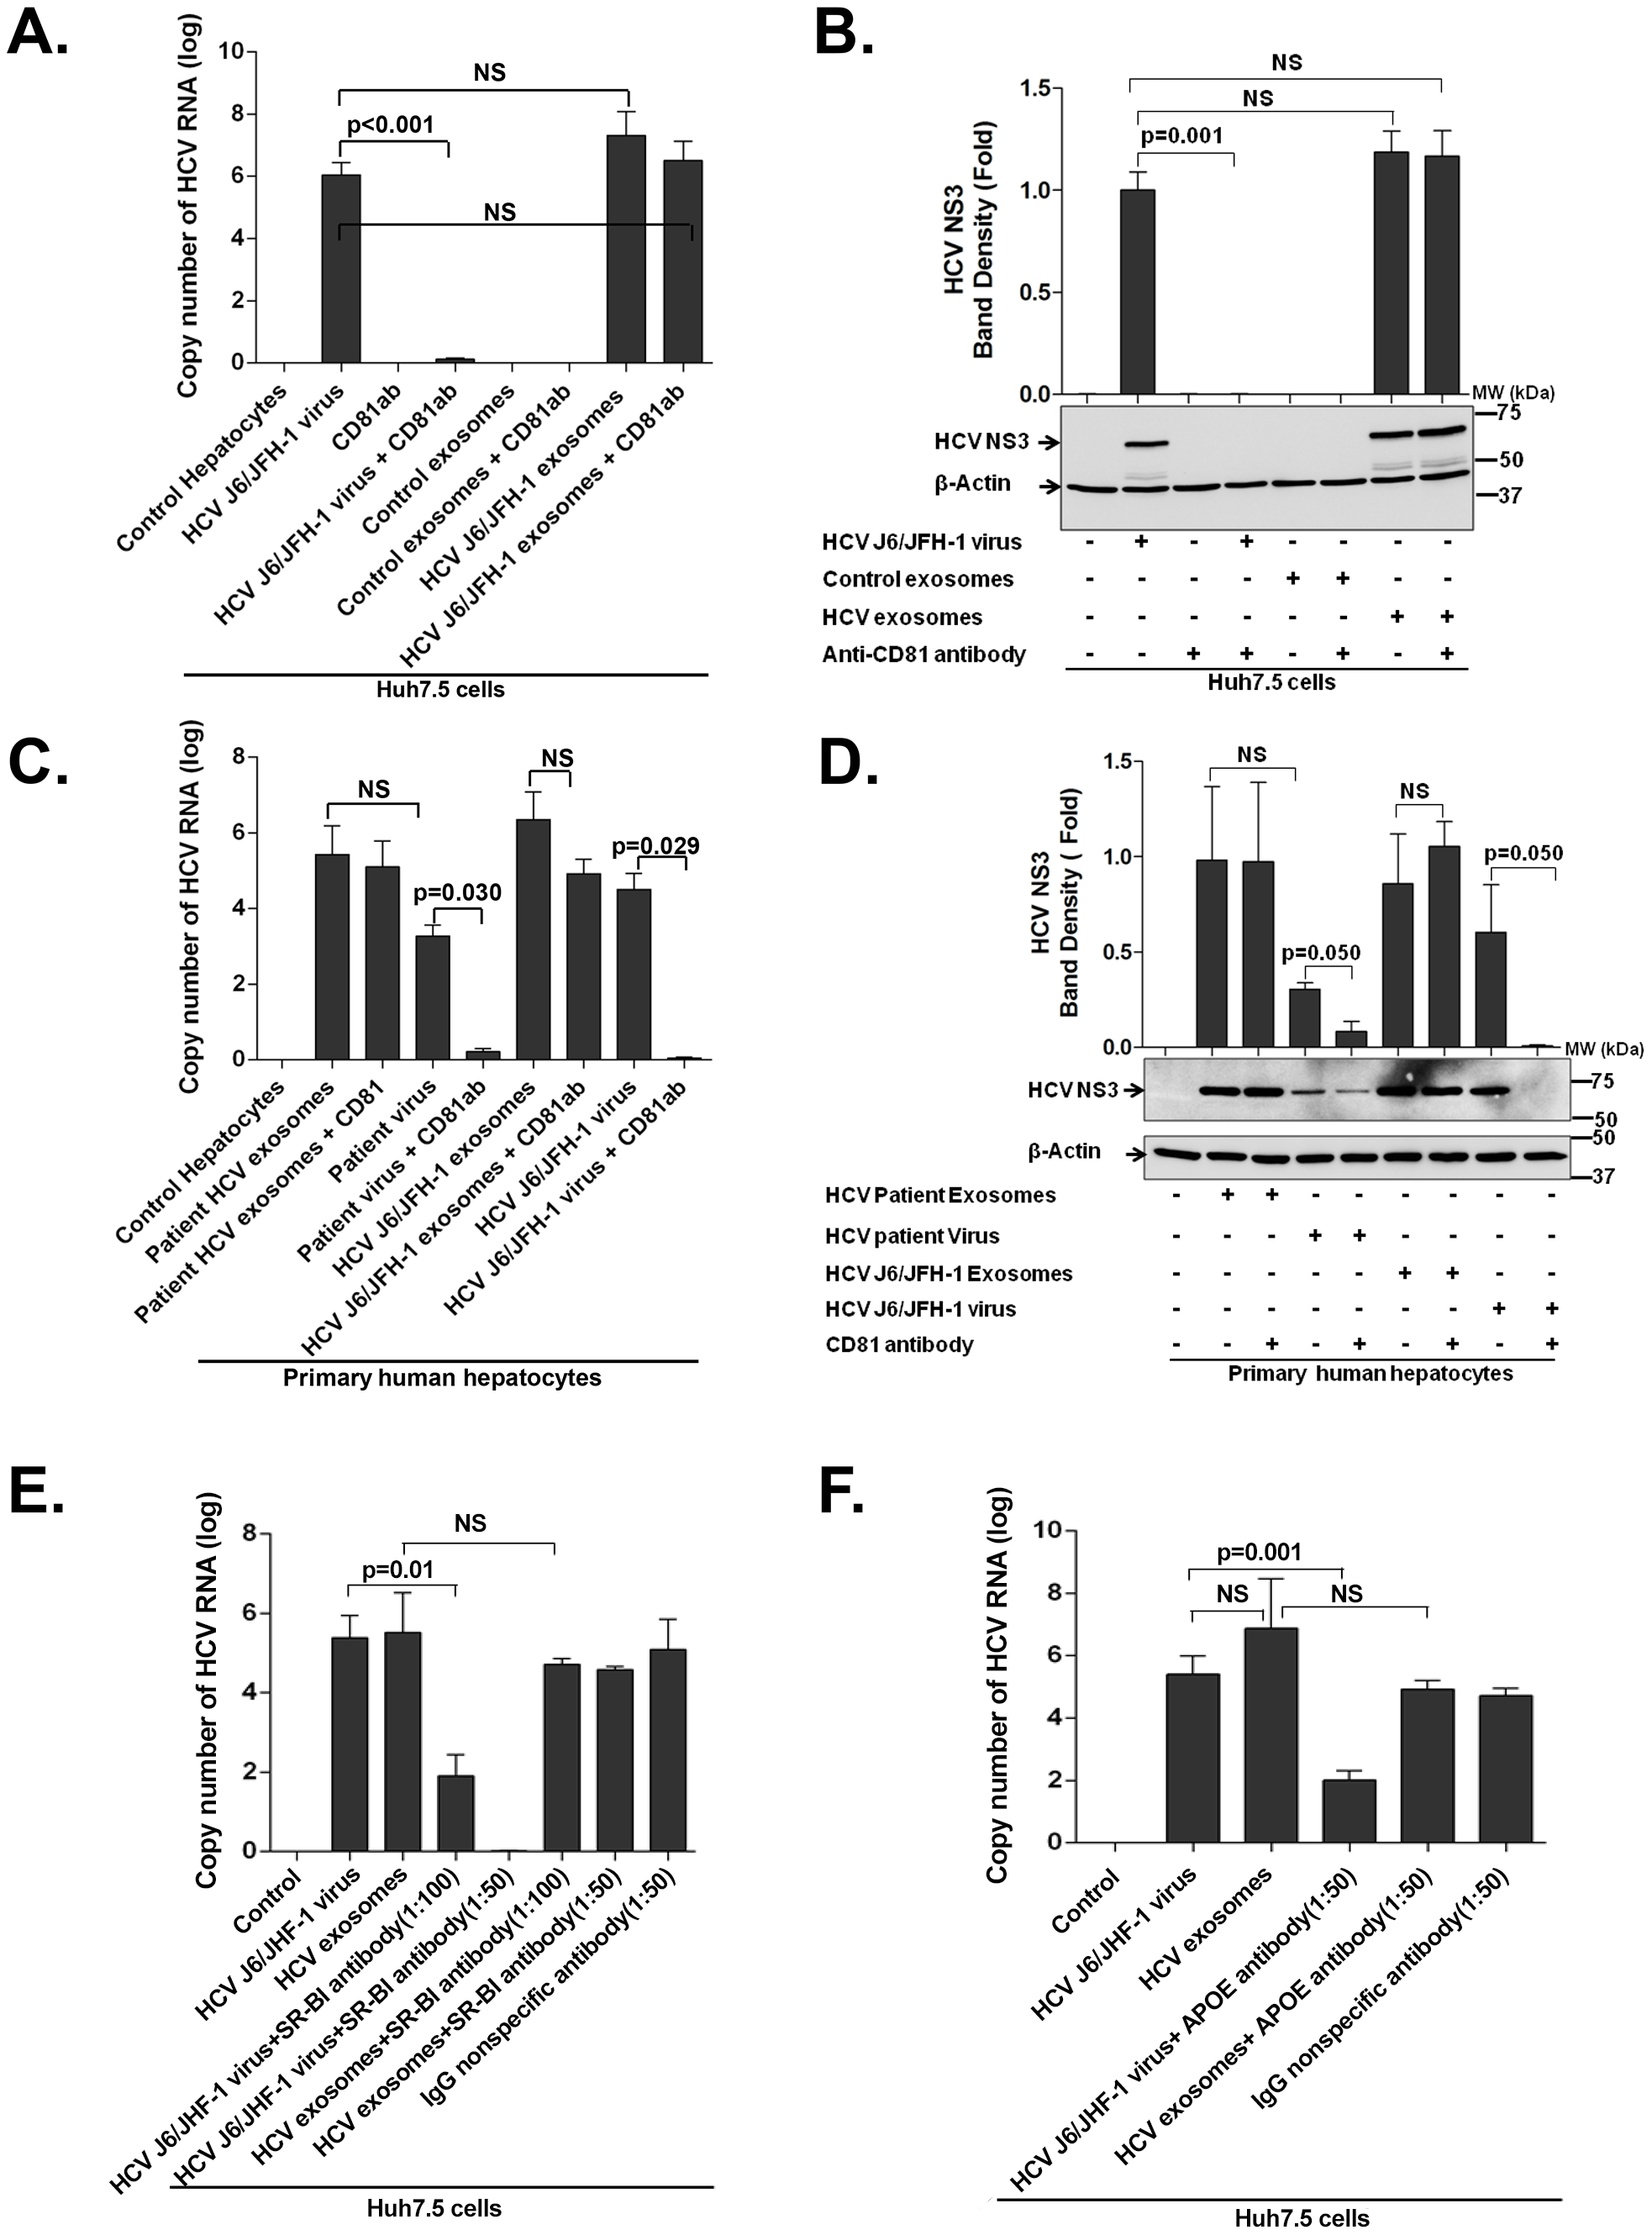 Exosomes from HCV J6/JFH-1 infected Huh7.5 cells and HCV patients mediate effective HCV transmission in the presence of anti-CD81, anti-SB-RI or anti-APOE antibody.